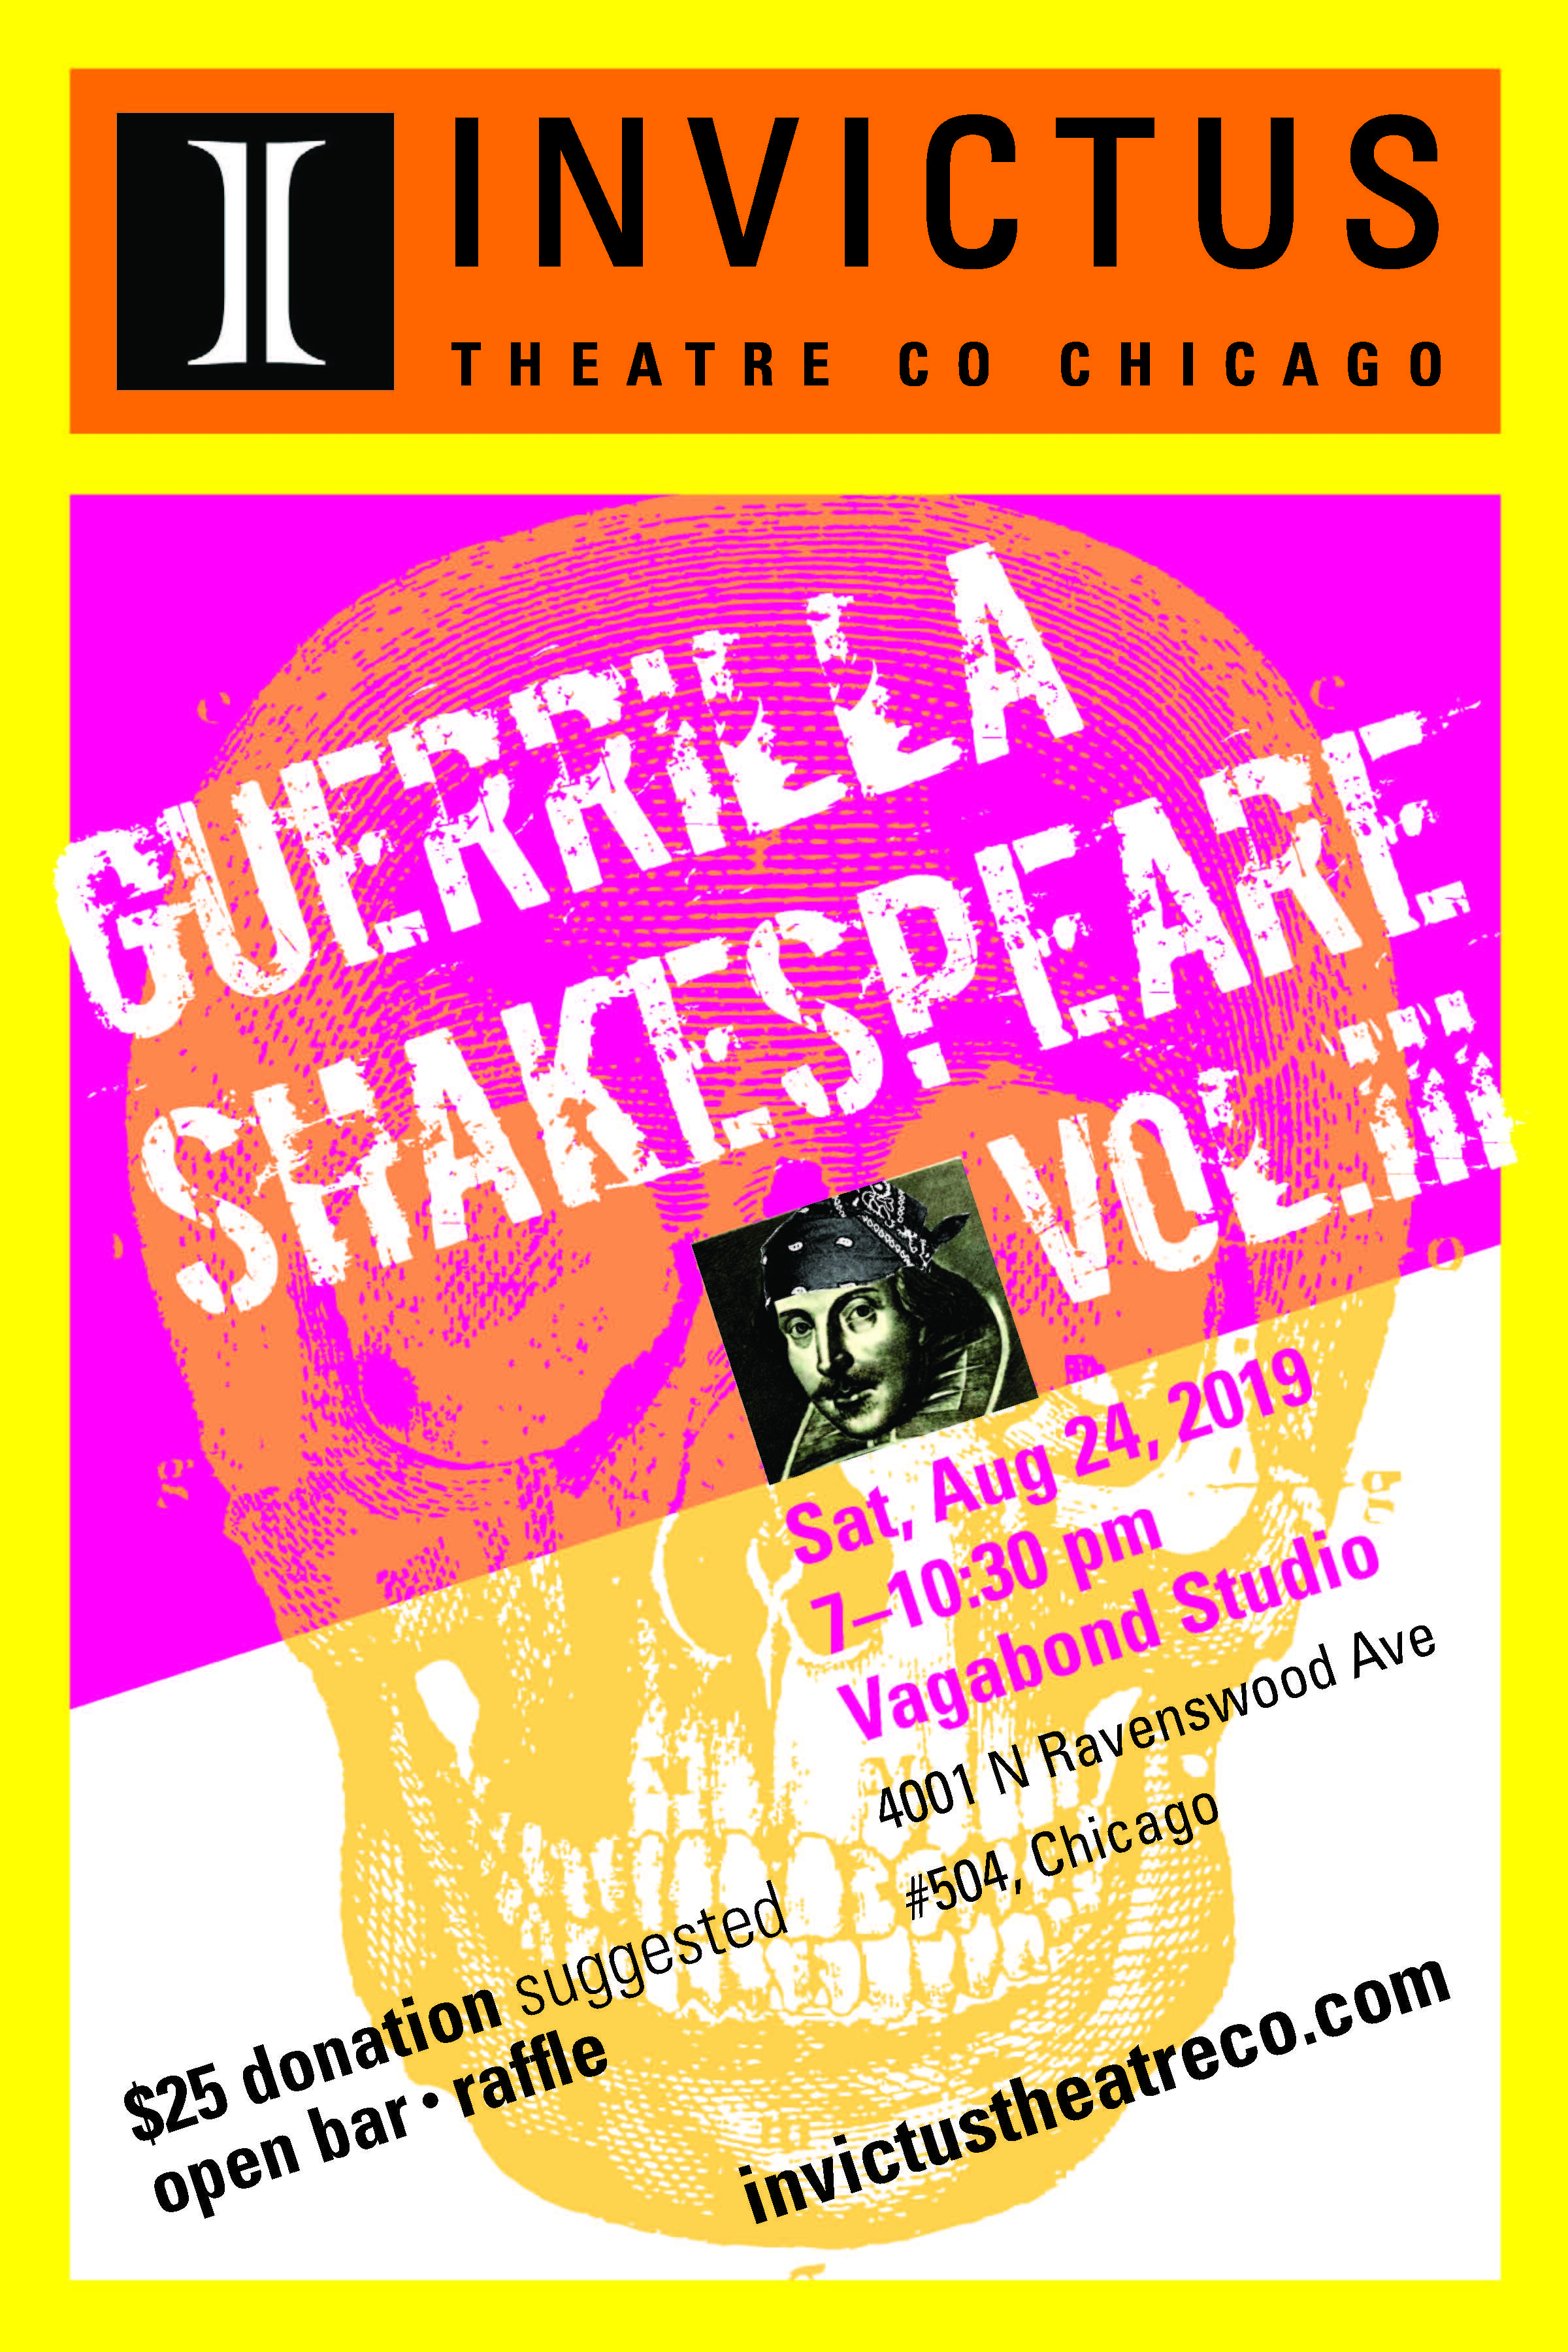 Guerrilla Shakespeare, Vol III - August 24, 20197-10:30pmVagabond StudioGuerrilla Shakespeare is a night of impromptu performances, laughs, and celebrating to raise funds for Invictus Theatre Company's 3rd season of performances and community outreach. In addition to 'Shakespeare karaoke', we'll have drinks, raffle prizes, and an awesome silent auction. Meet Invictus Theatre Company members and support our programming at this fun party! Learn more about our upcoming season at https://igg.me/at/InvictusSeason3Admission is free, with a $25 suggested donation at the door. This event is for guests 21+ years of age.